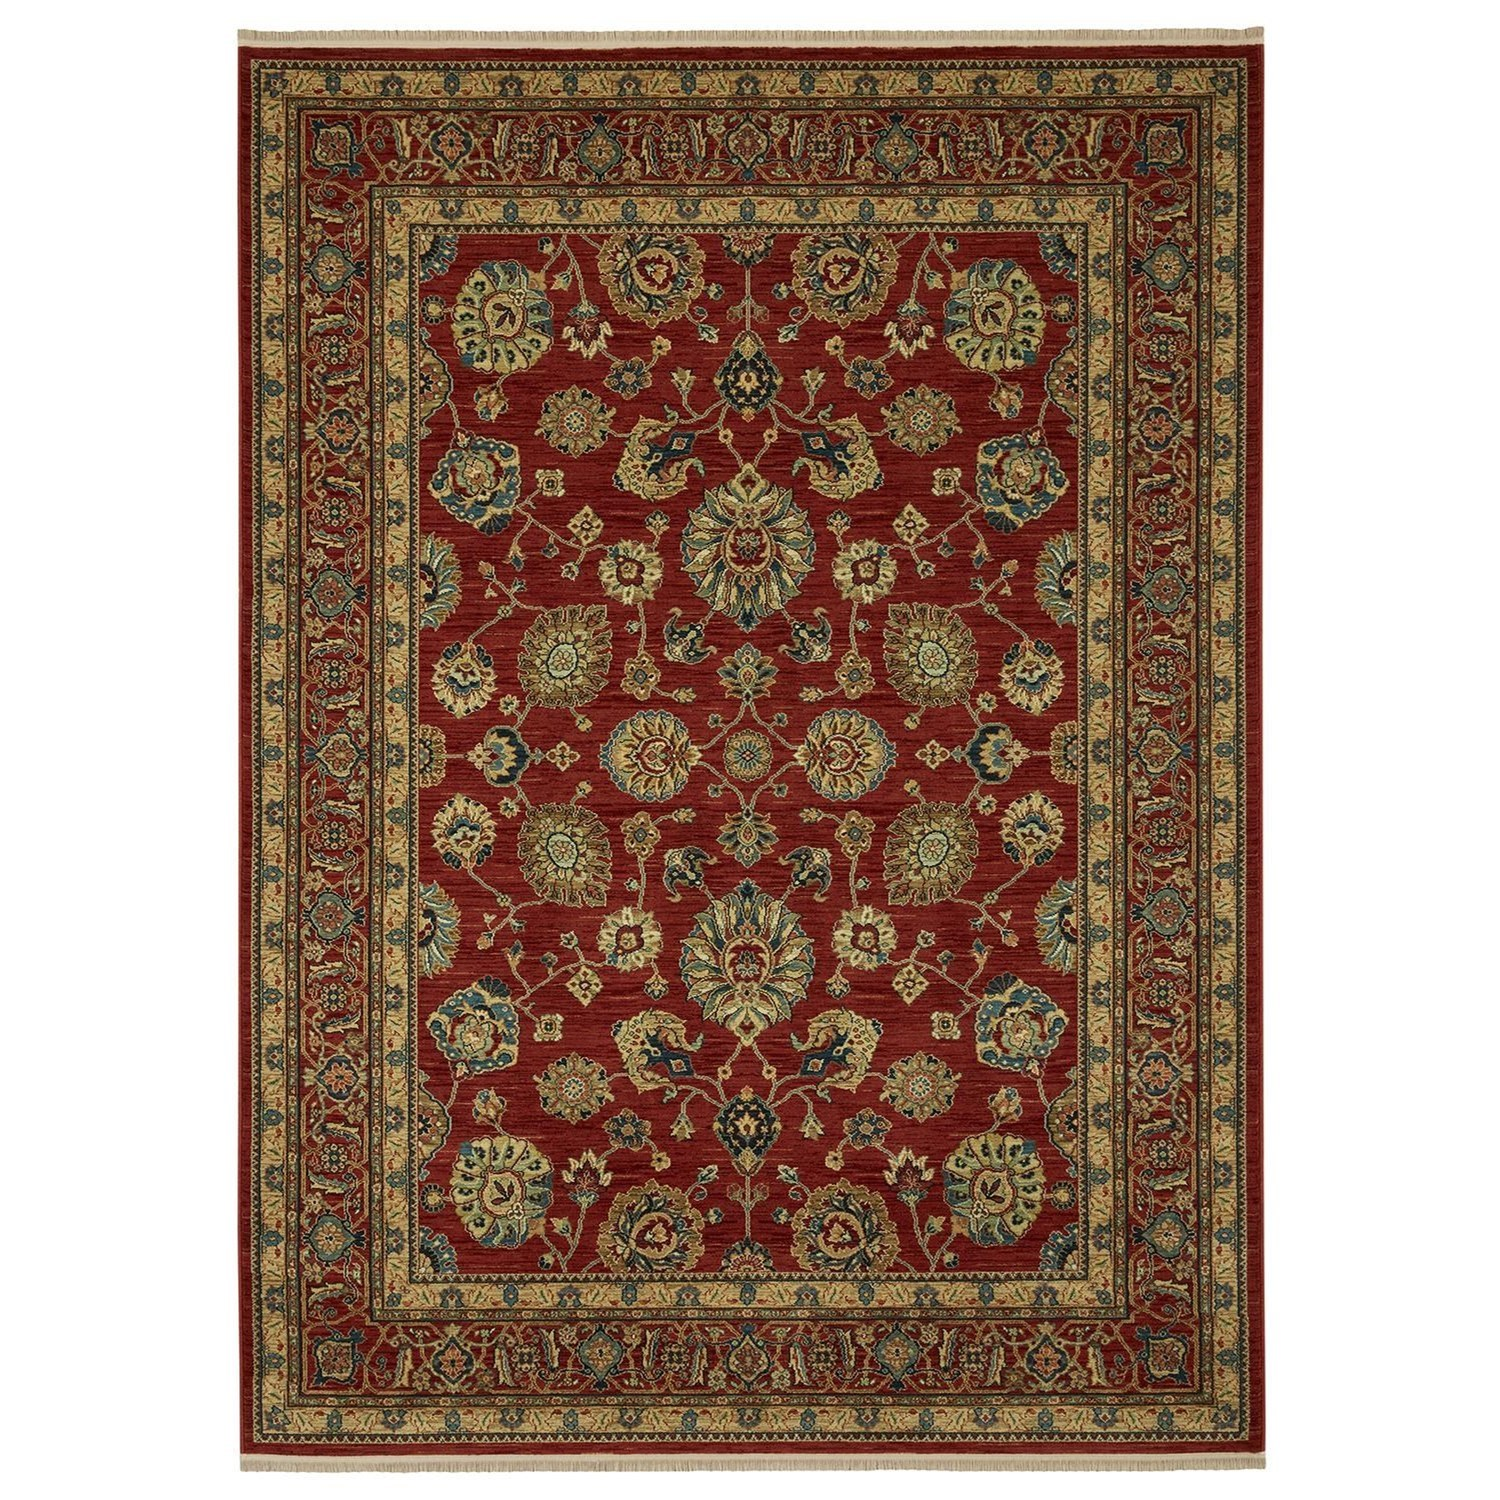 Sovereign 8'8x10' Sultana Red Rug by Karastan Rugs at Alison Craig Home Furnishings